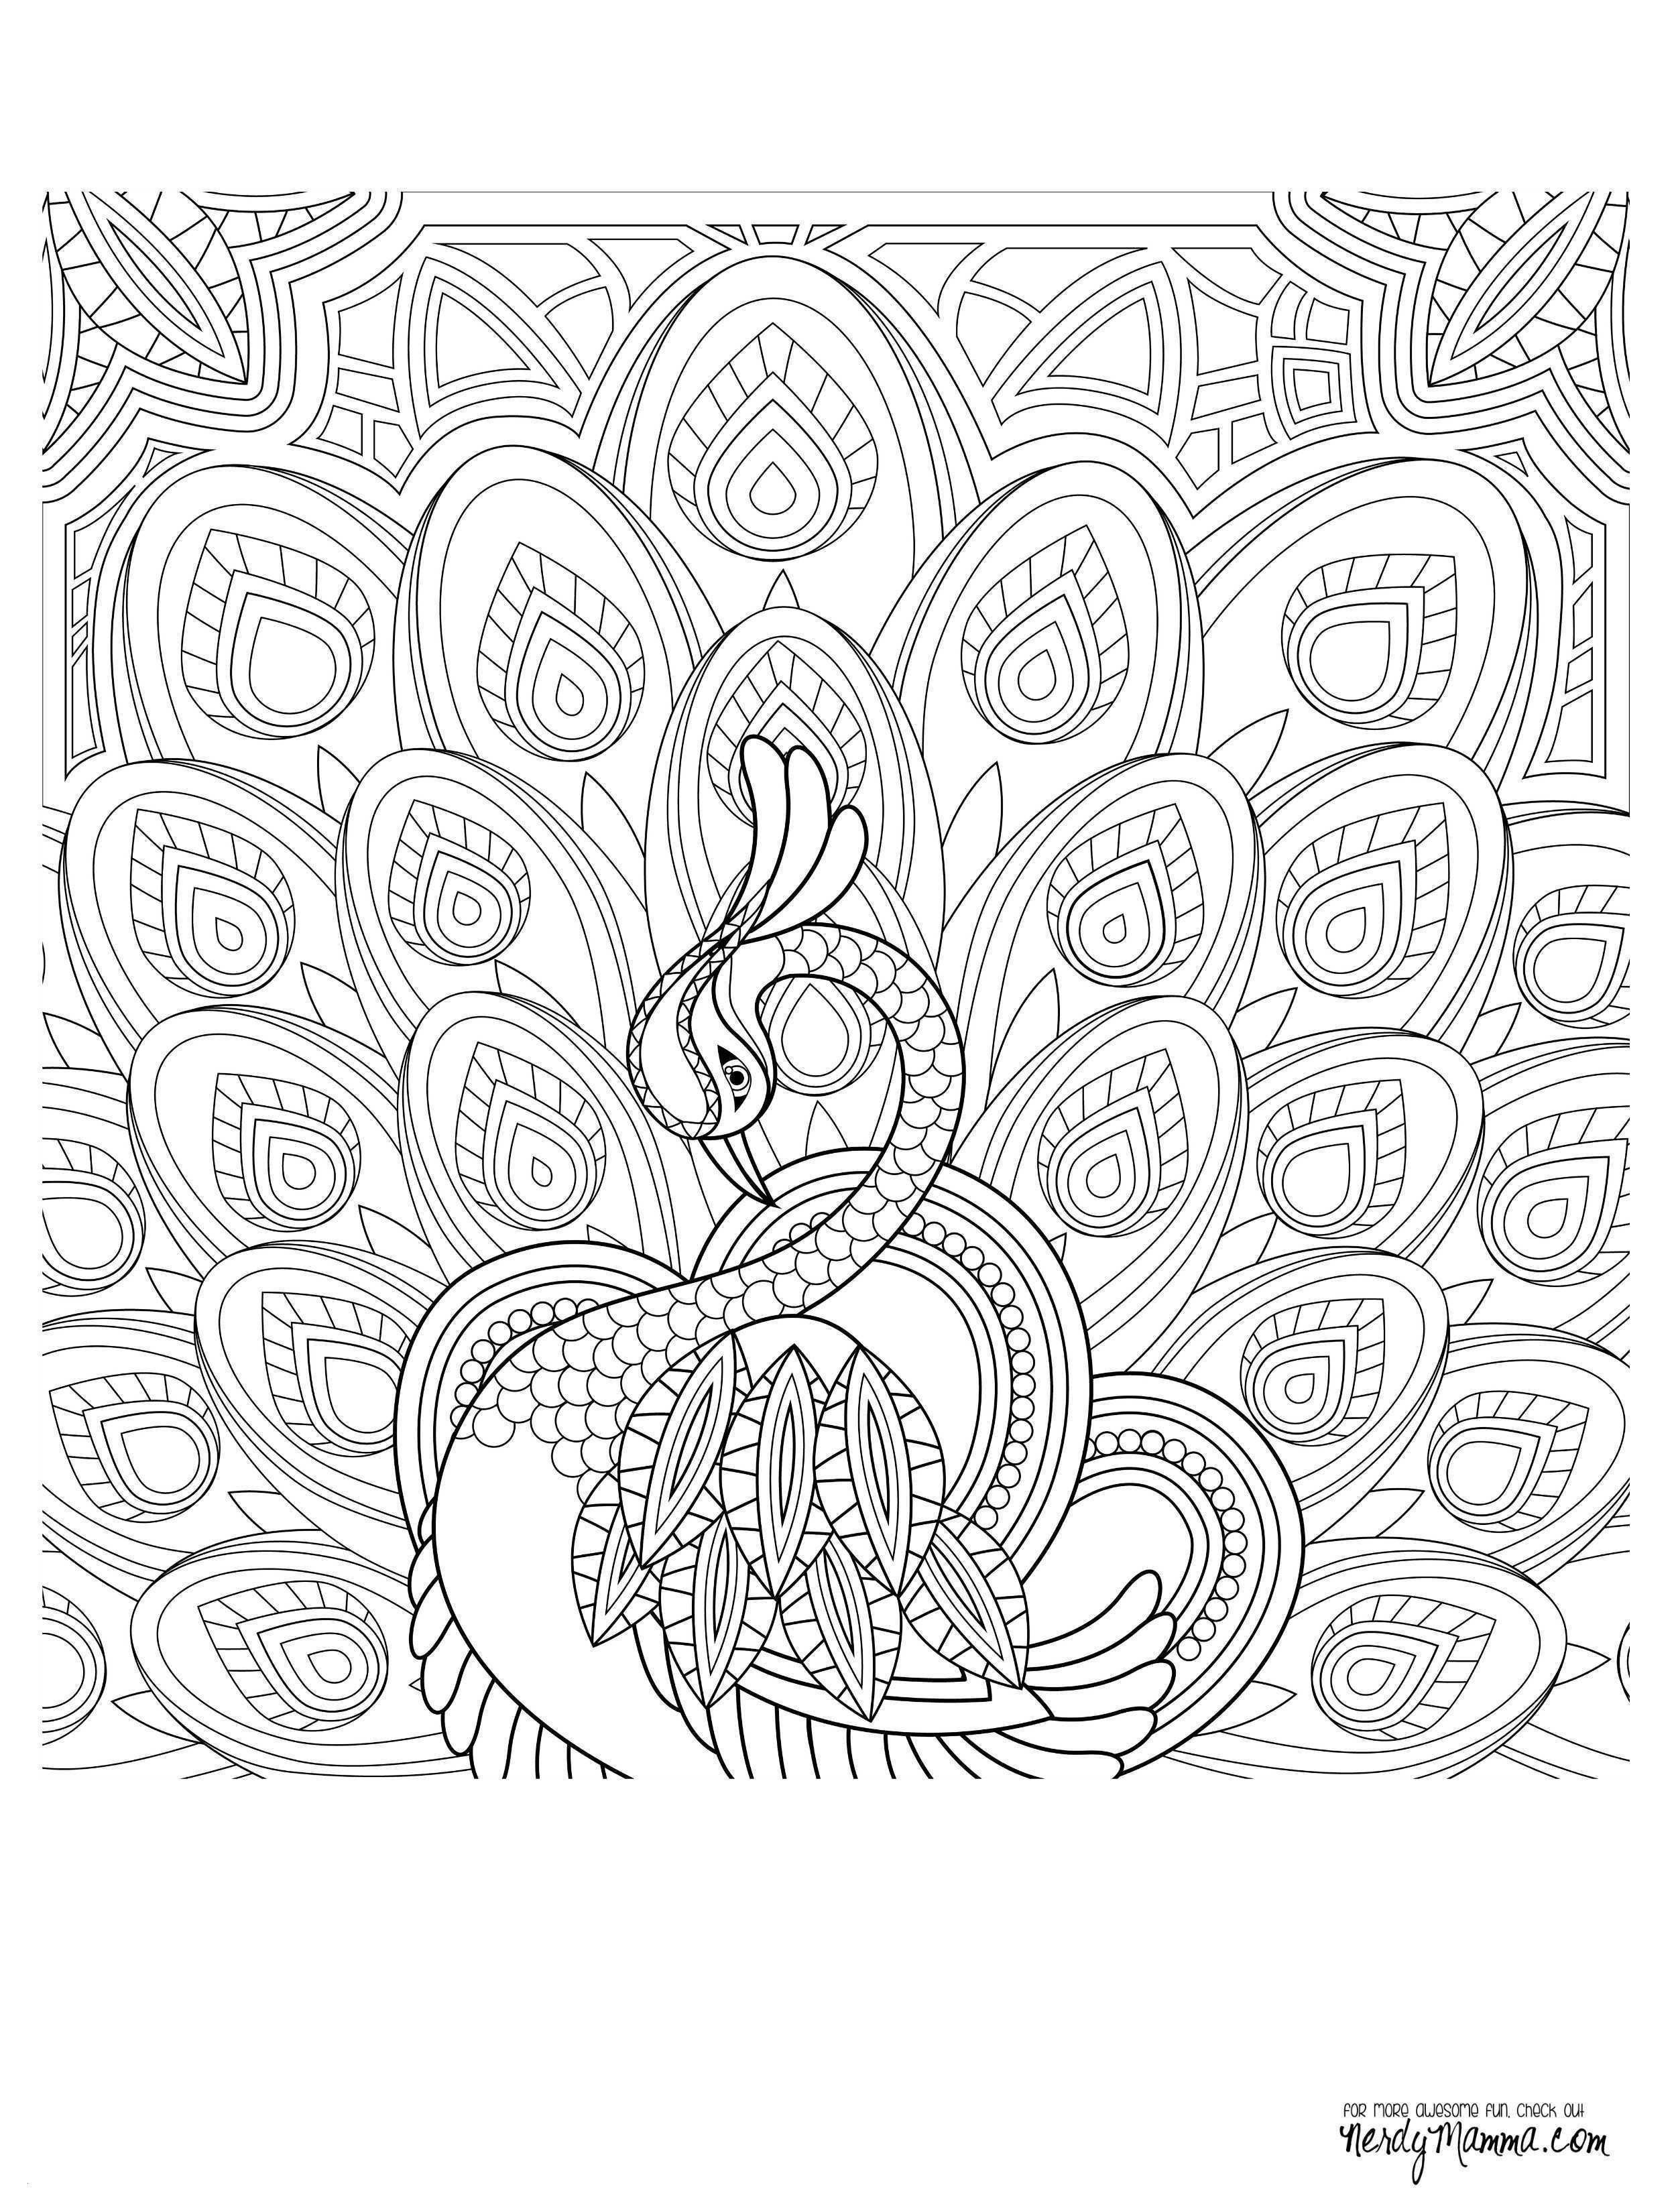 Minnie Mouse Malvorlage Neu Free Minnie Mouse Coloring Pages Unique Mickey Mouse Coloring Pages Galerie